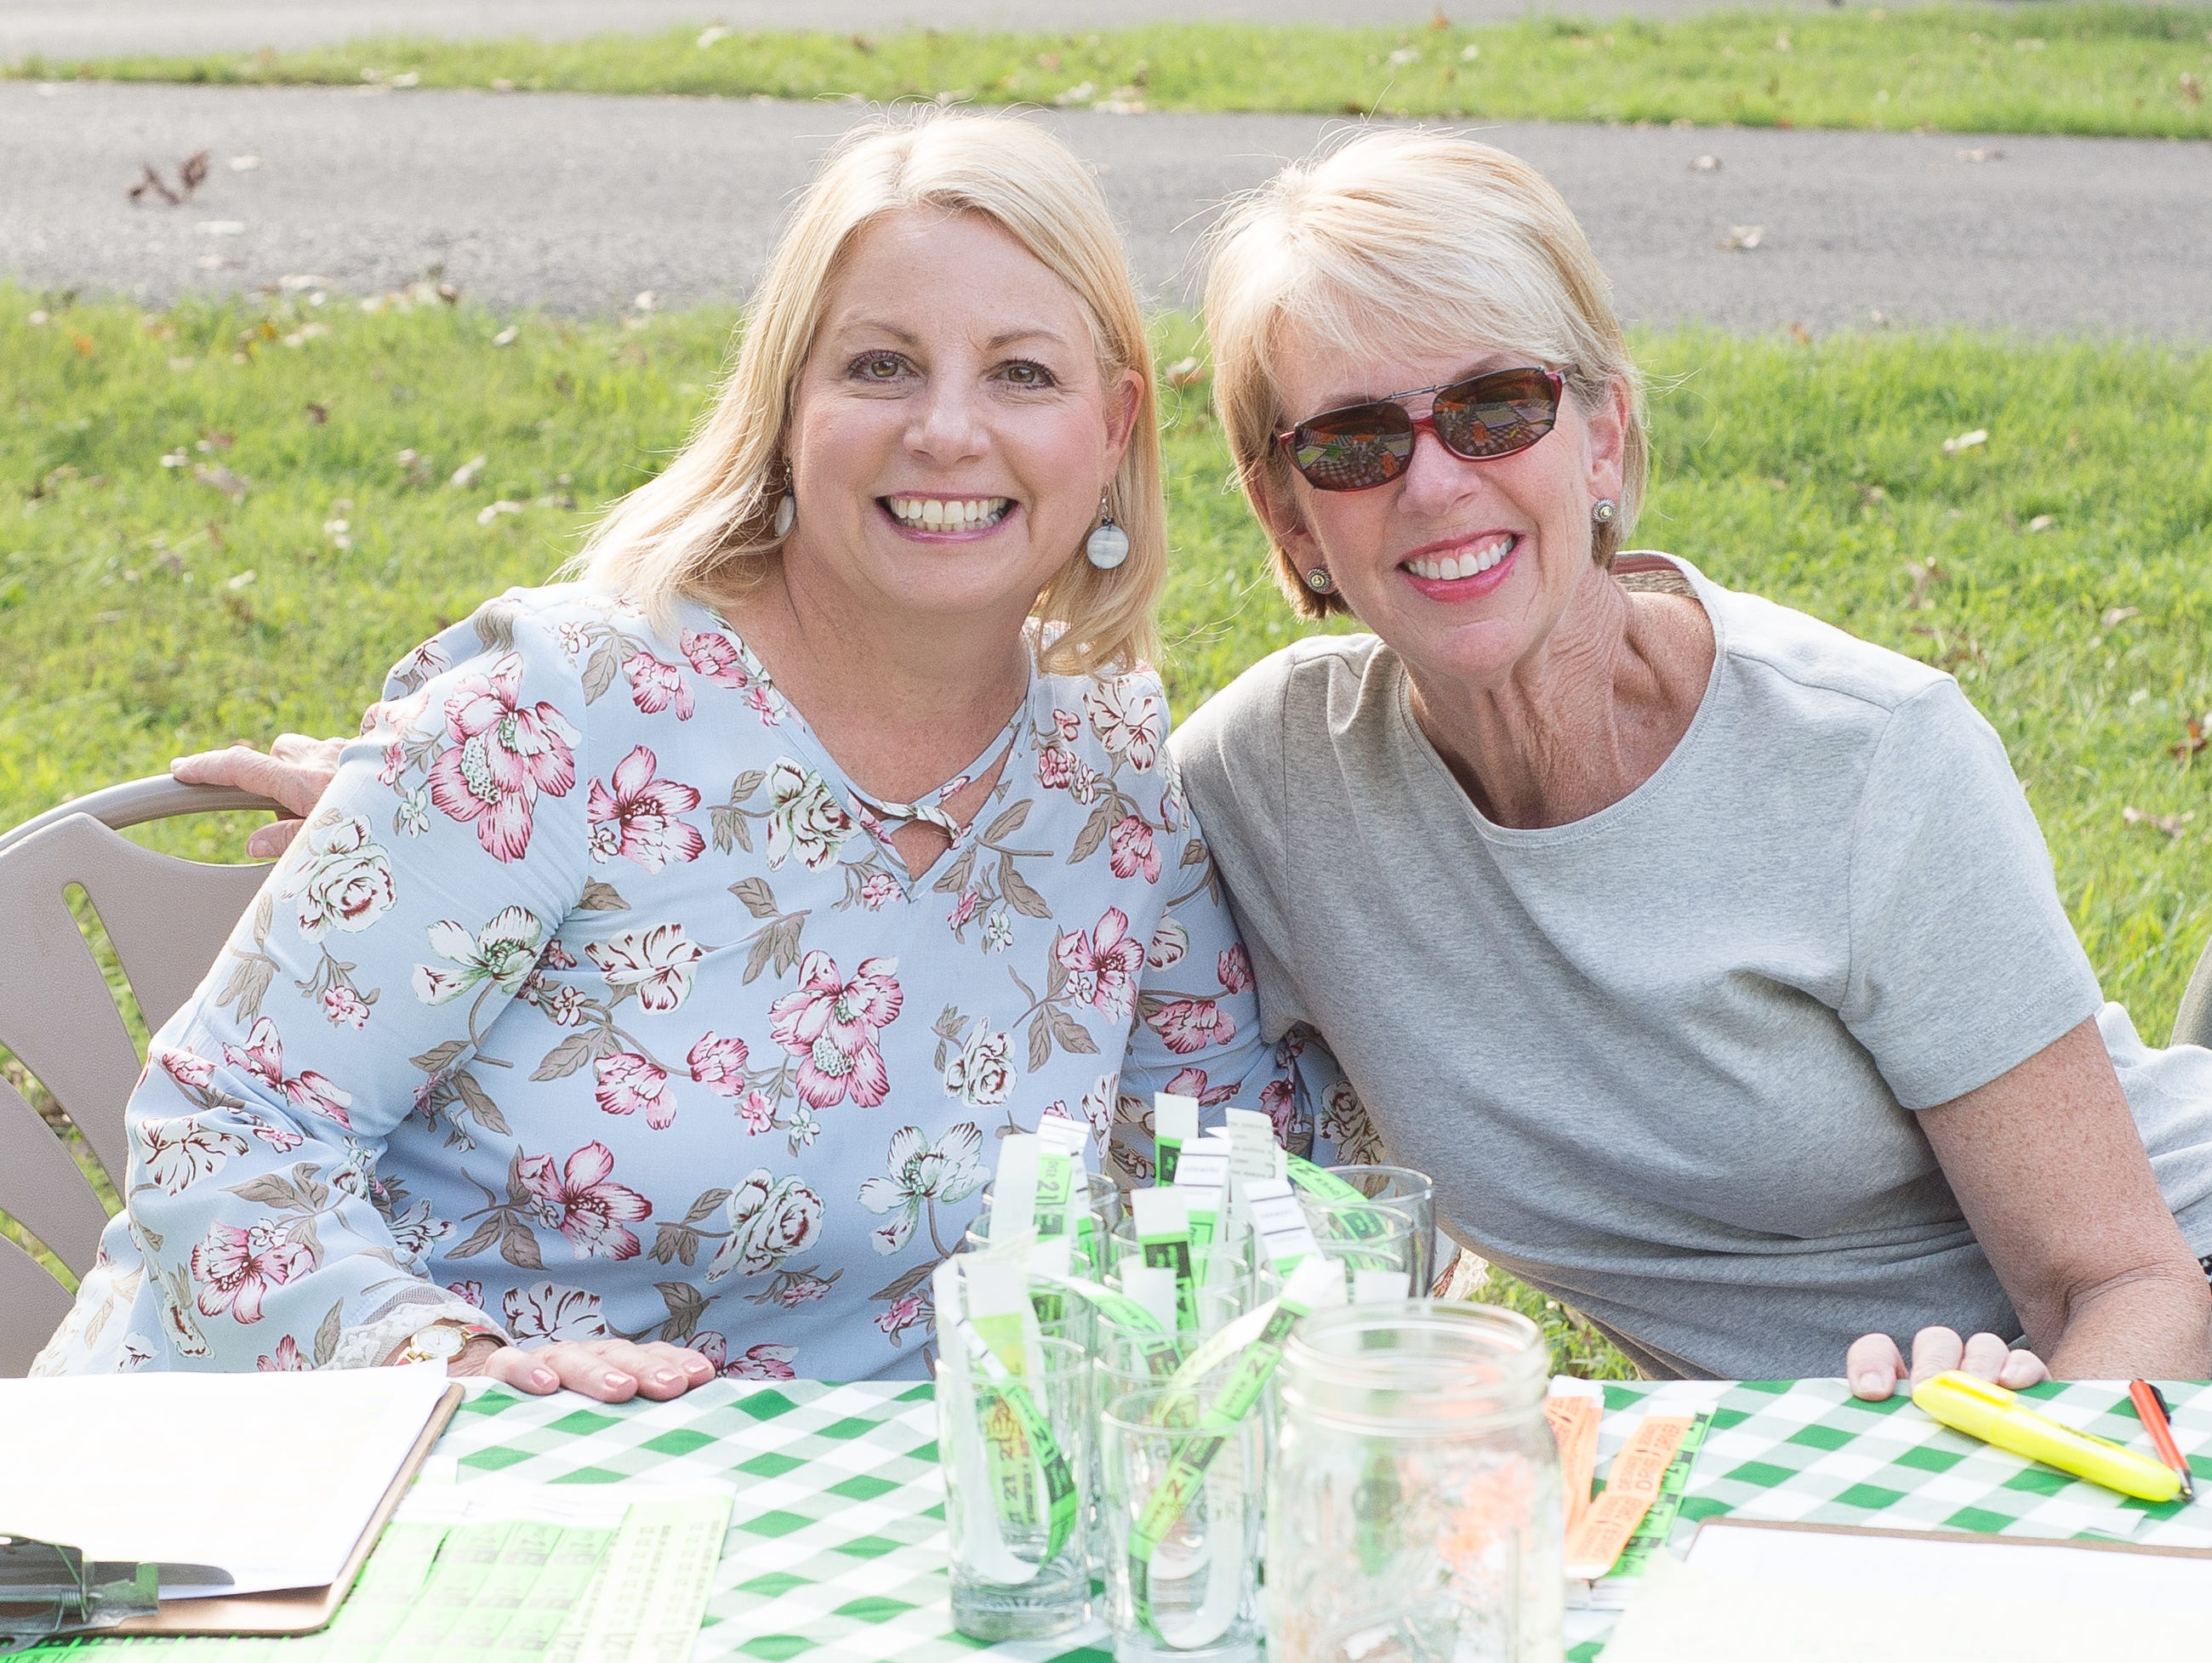 Karen Whitaker and Susan Grear help out during Oktoberfest at Oaklands Mansion in Murfreesboro on Saturday, Sept. 29.